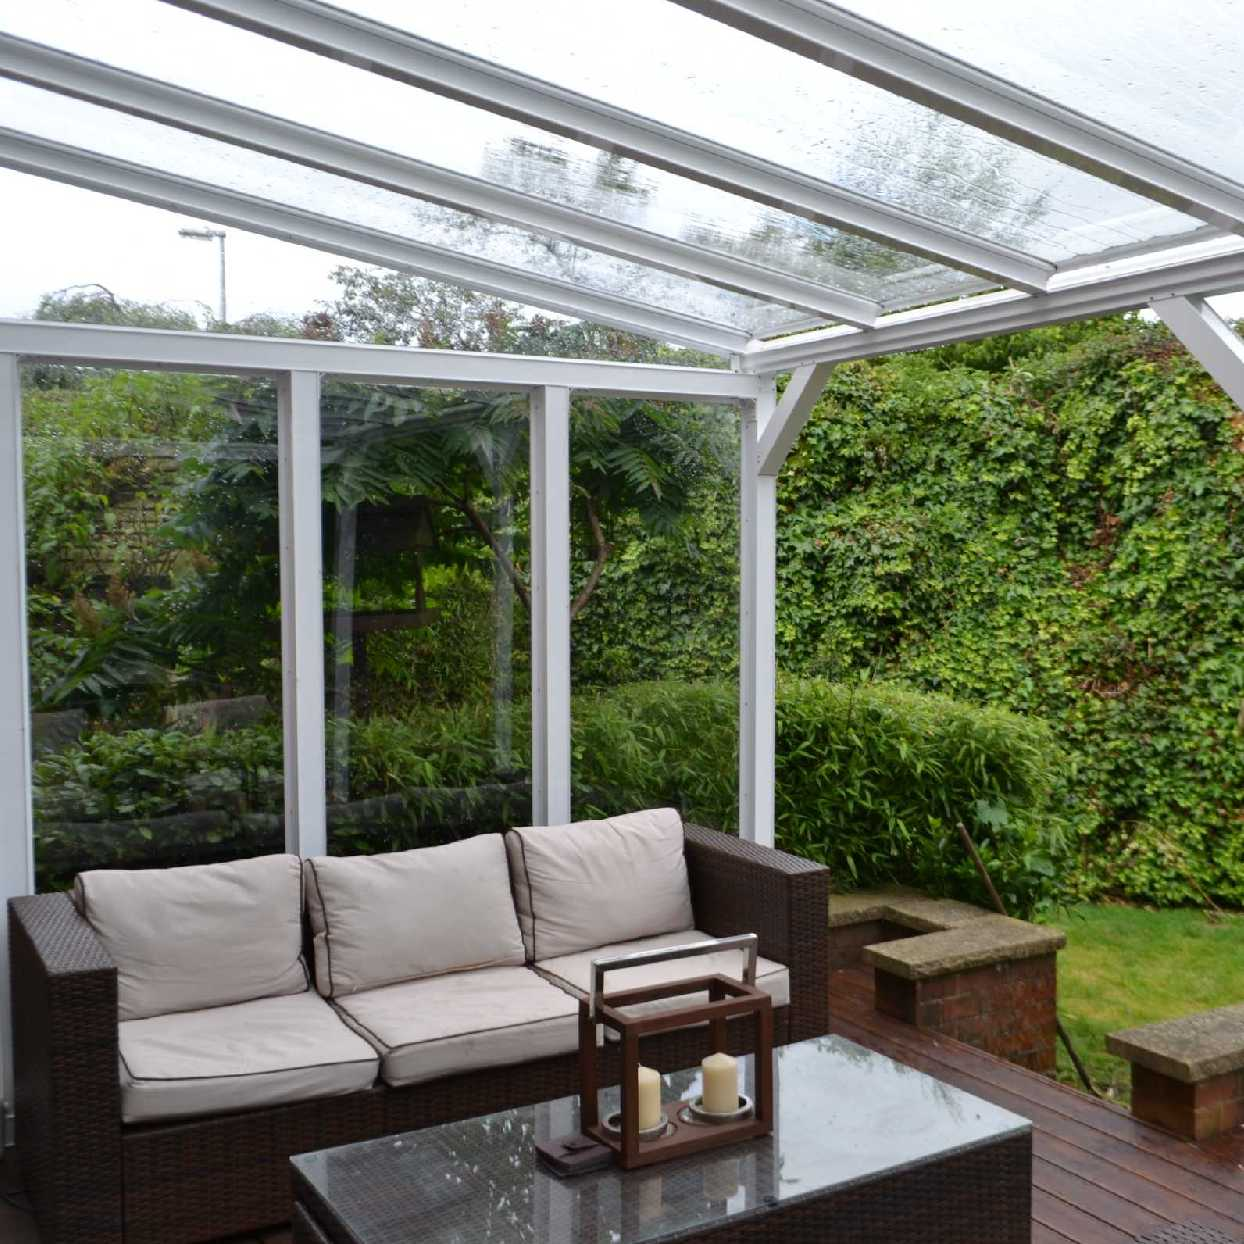 Great selection of Omega Smart Lean-To Canopy with 16mm Polycarbonate Glazing - 3.1m (W) x 1.5m (P), (2) Supporting Posts